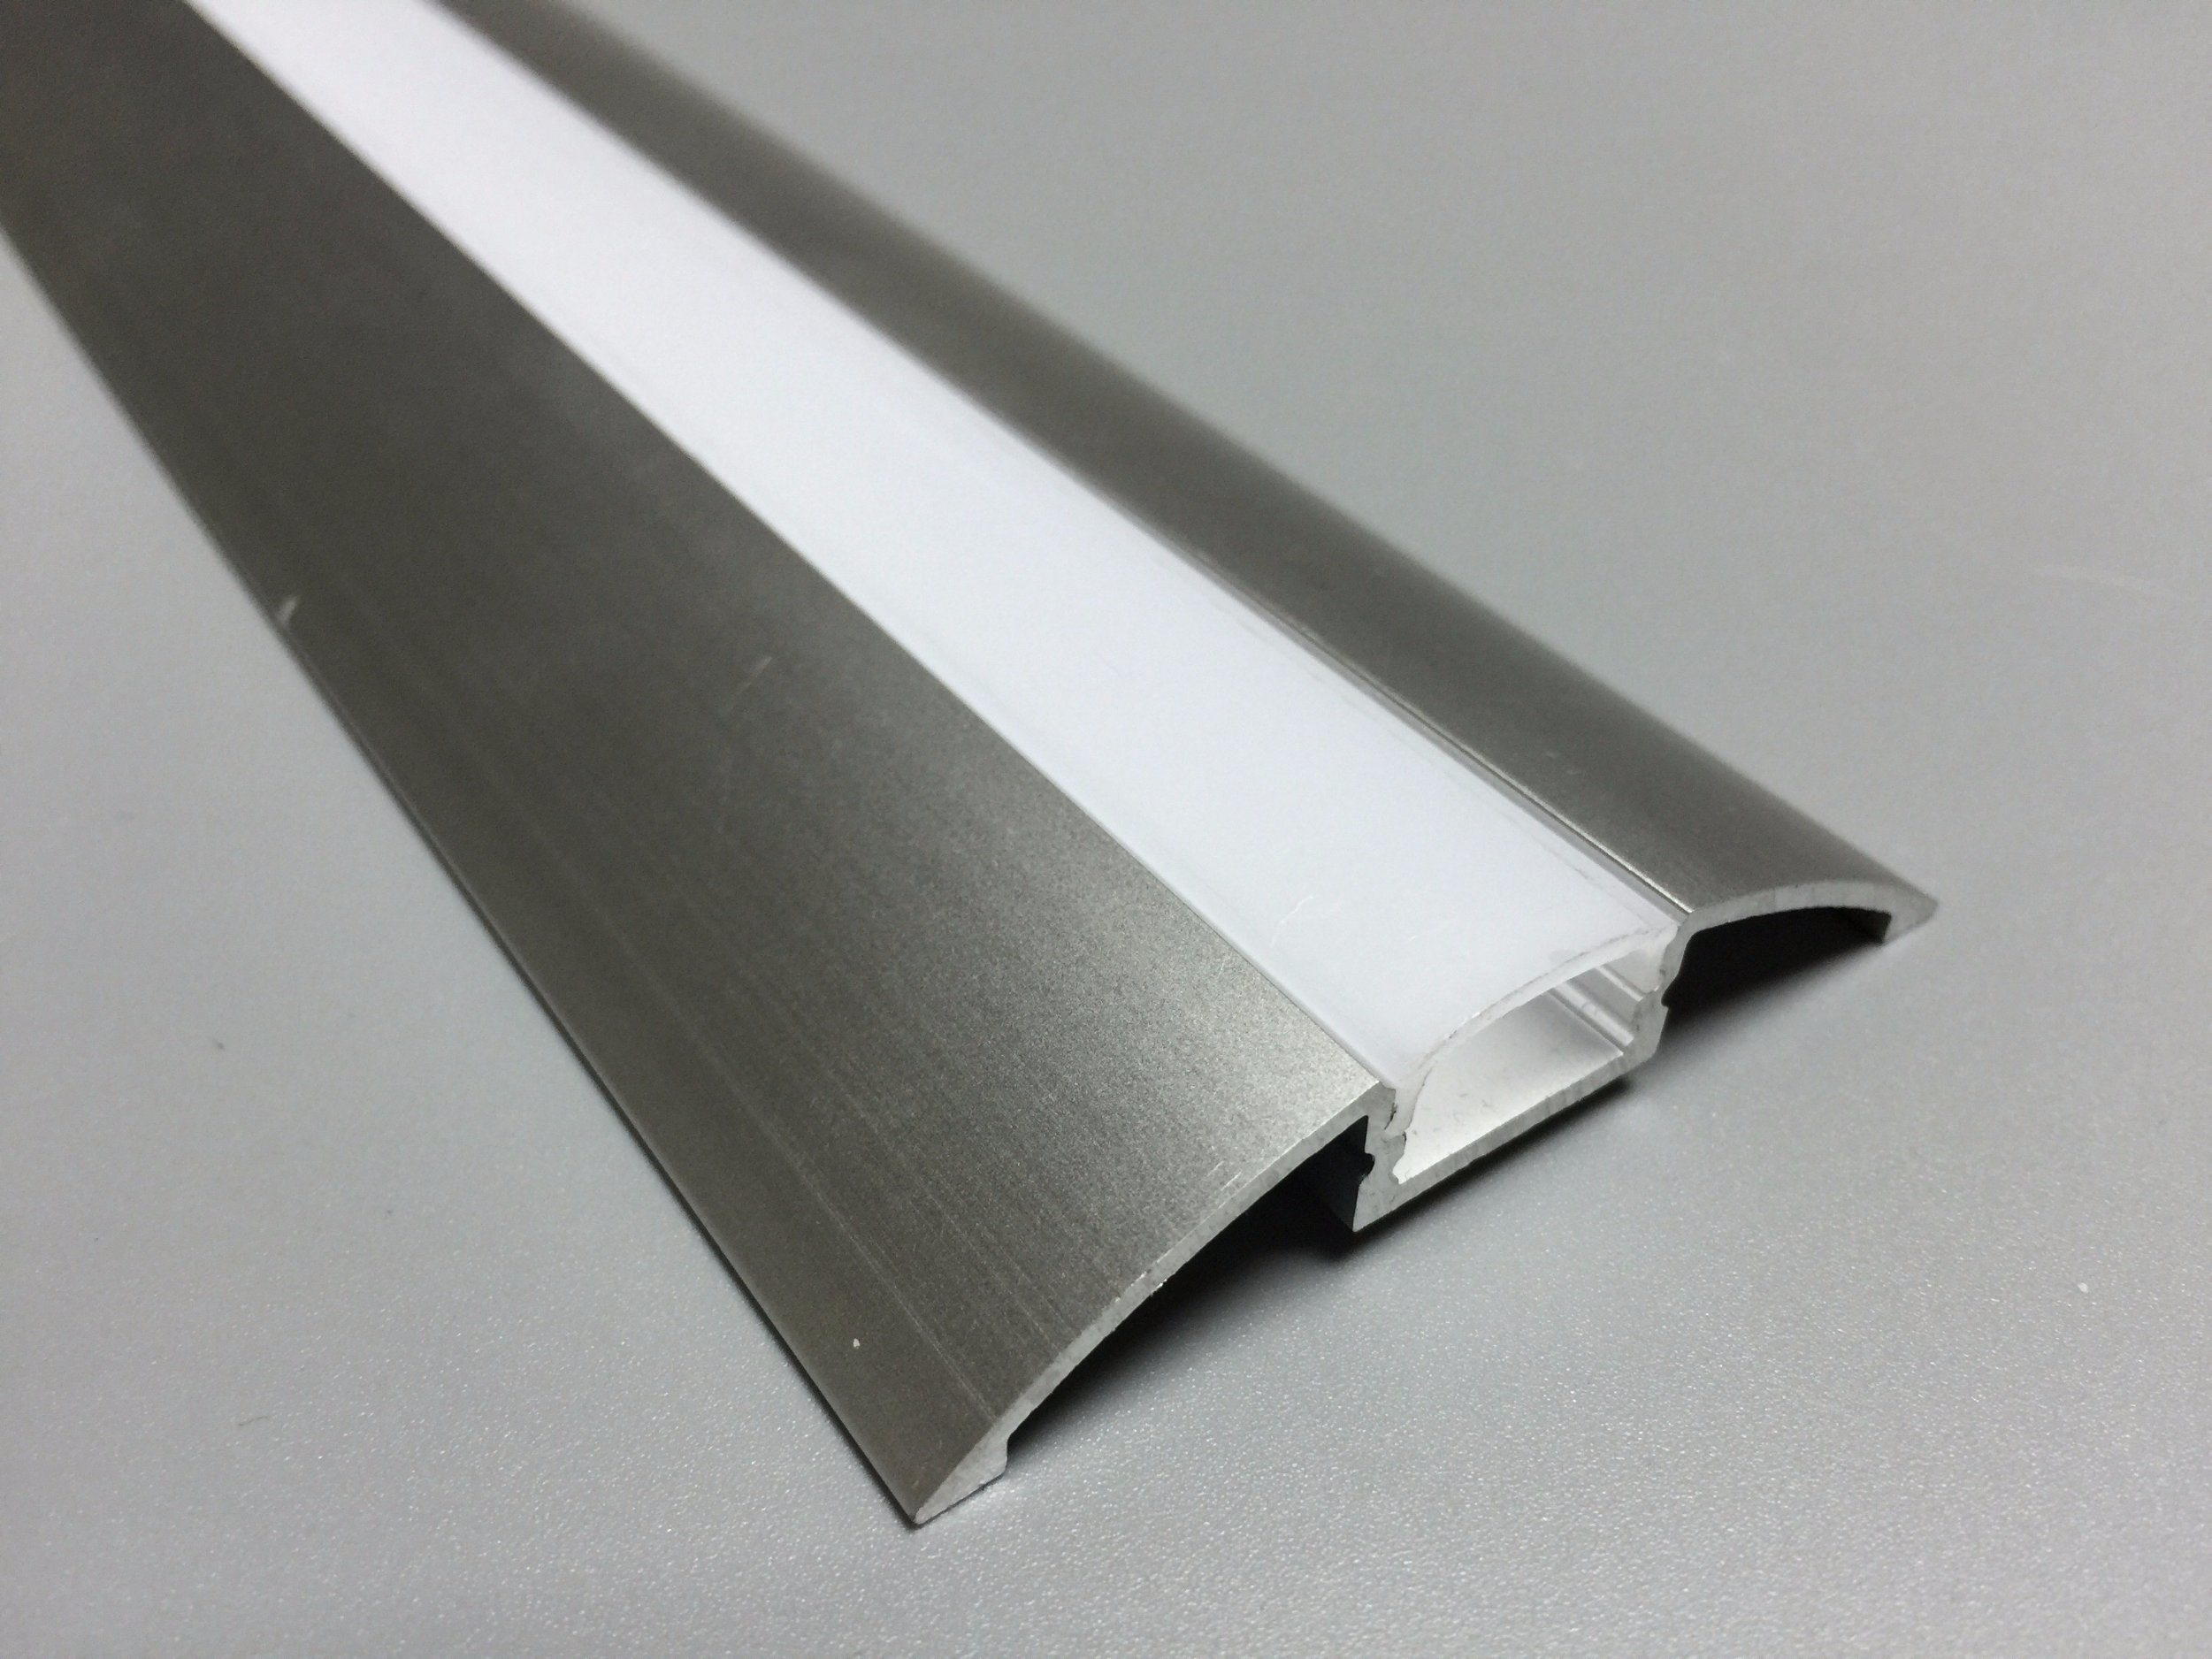 LED Aluminum Profile LED, Aluminium LED Profile, LED Aluminium Channel